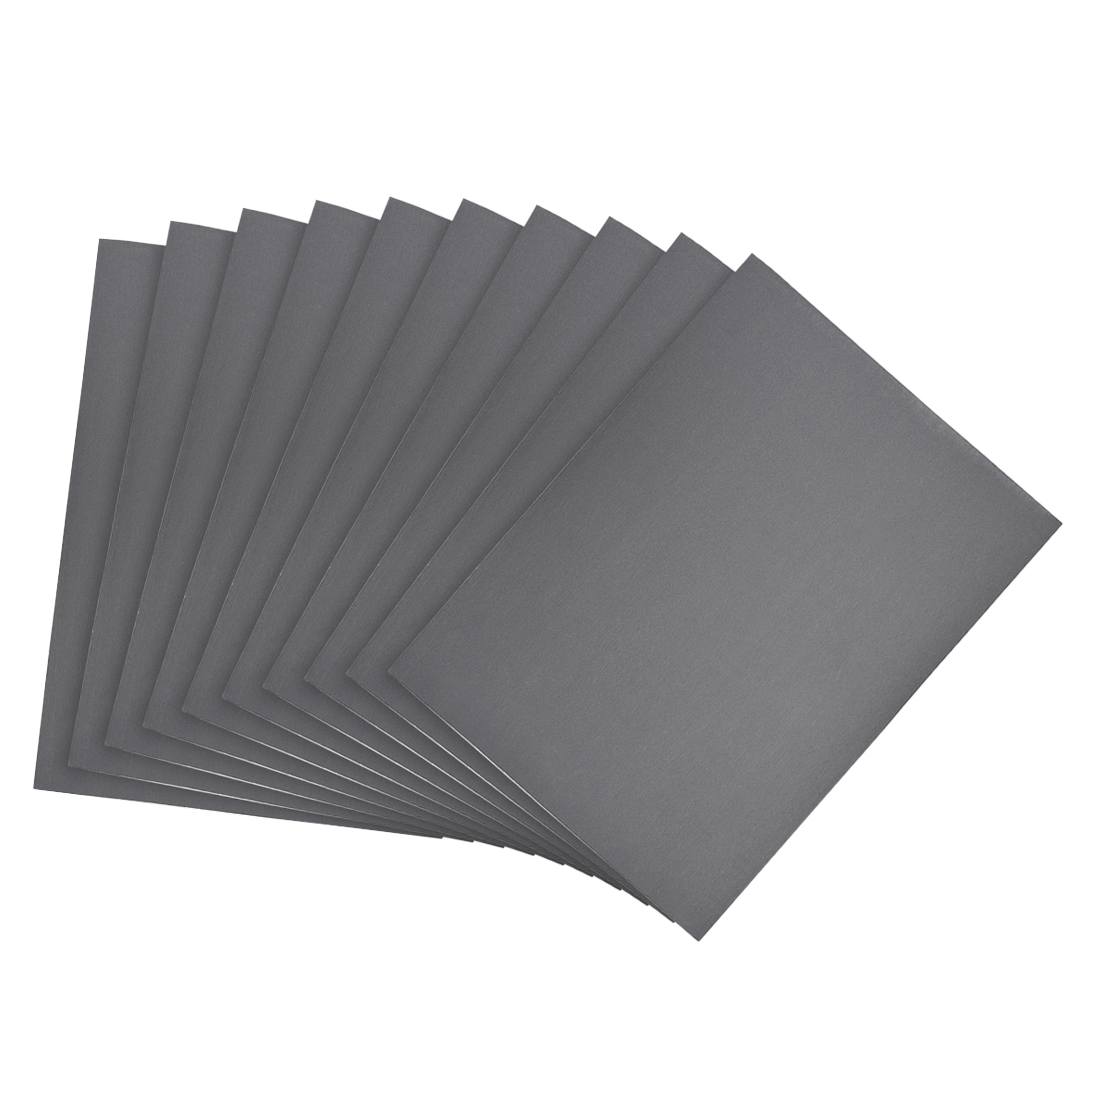 Waterproof Sandpaper, Wet Dry Sand Paper Grit of 1200, 11 x 9inch 10pcs